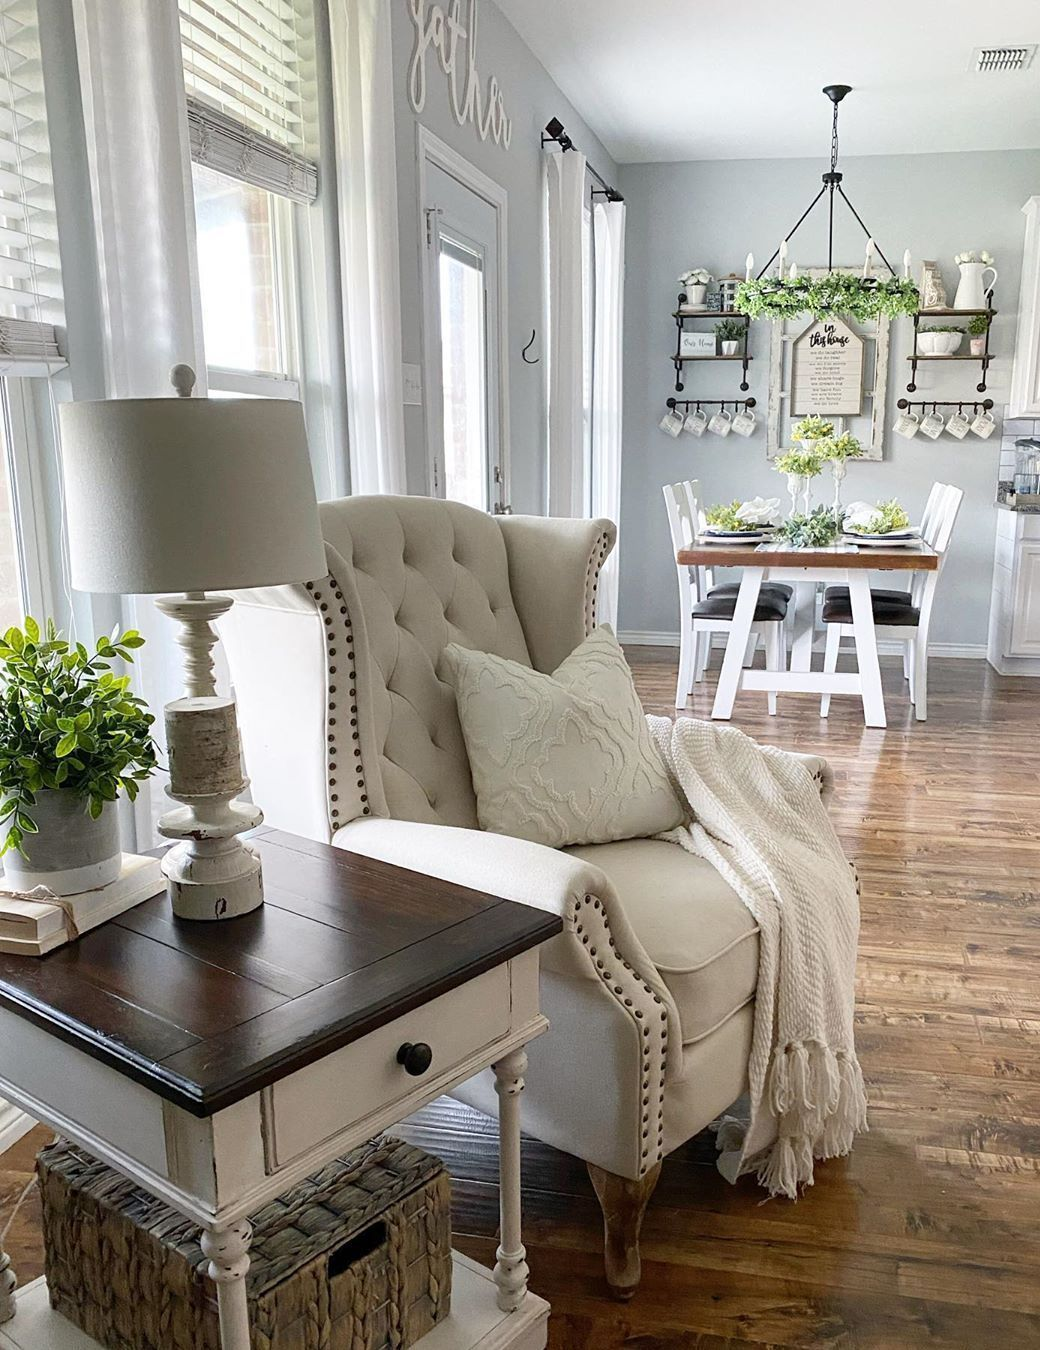 7 Cozy Farmhouse Accent Chairs for Relaxing